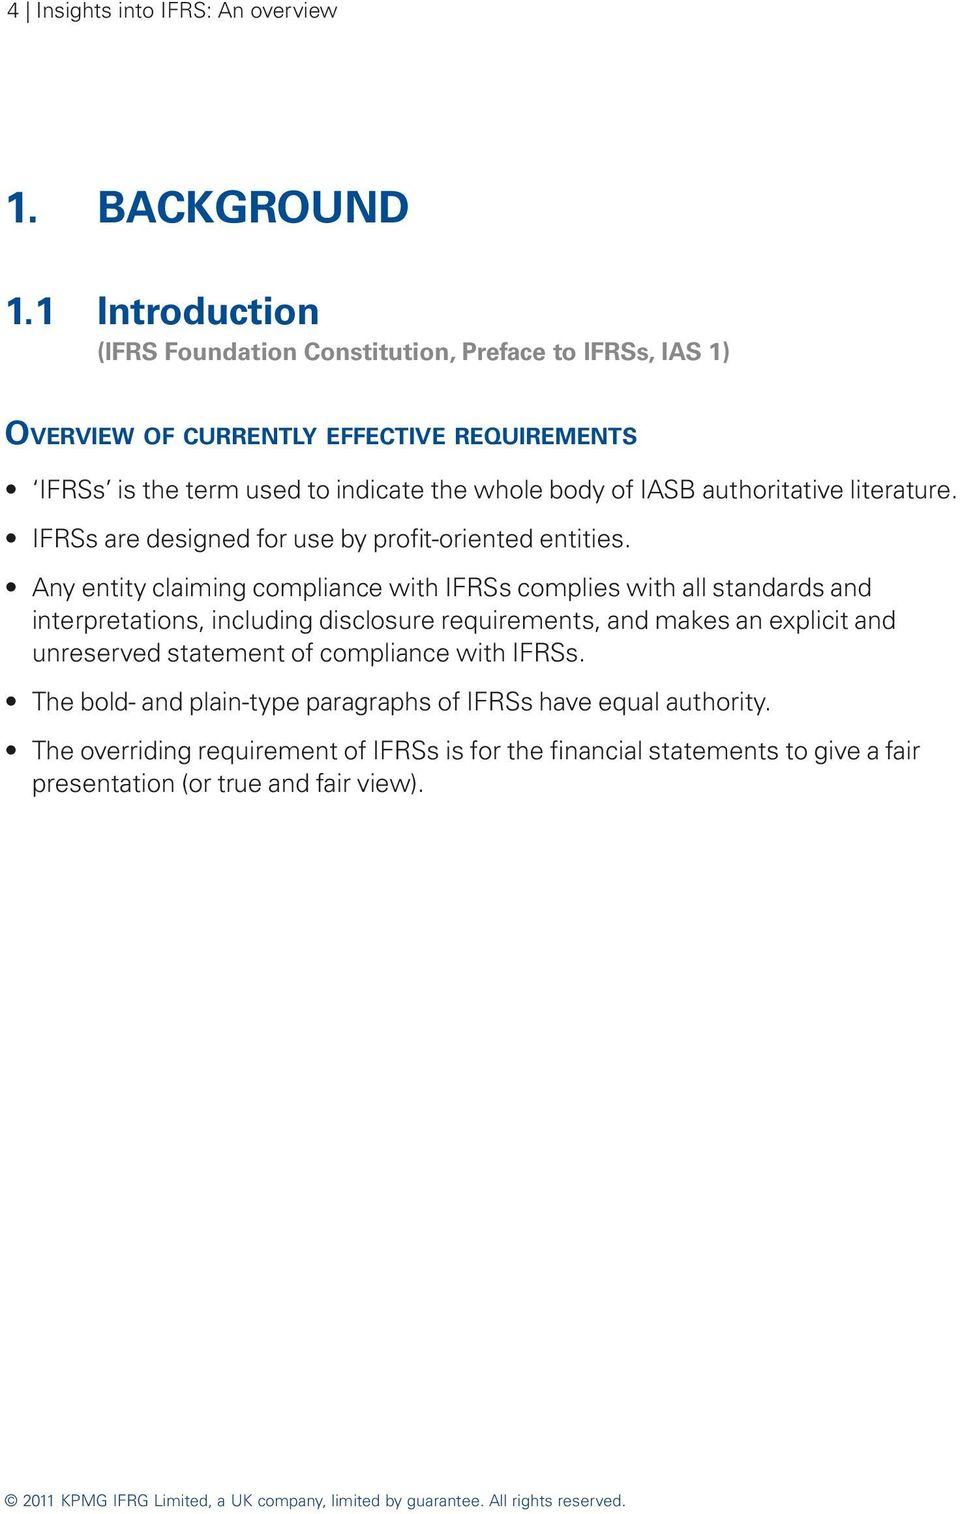 IASB authoritative literature. IFRSs are designed for use by profit-oriented entities.